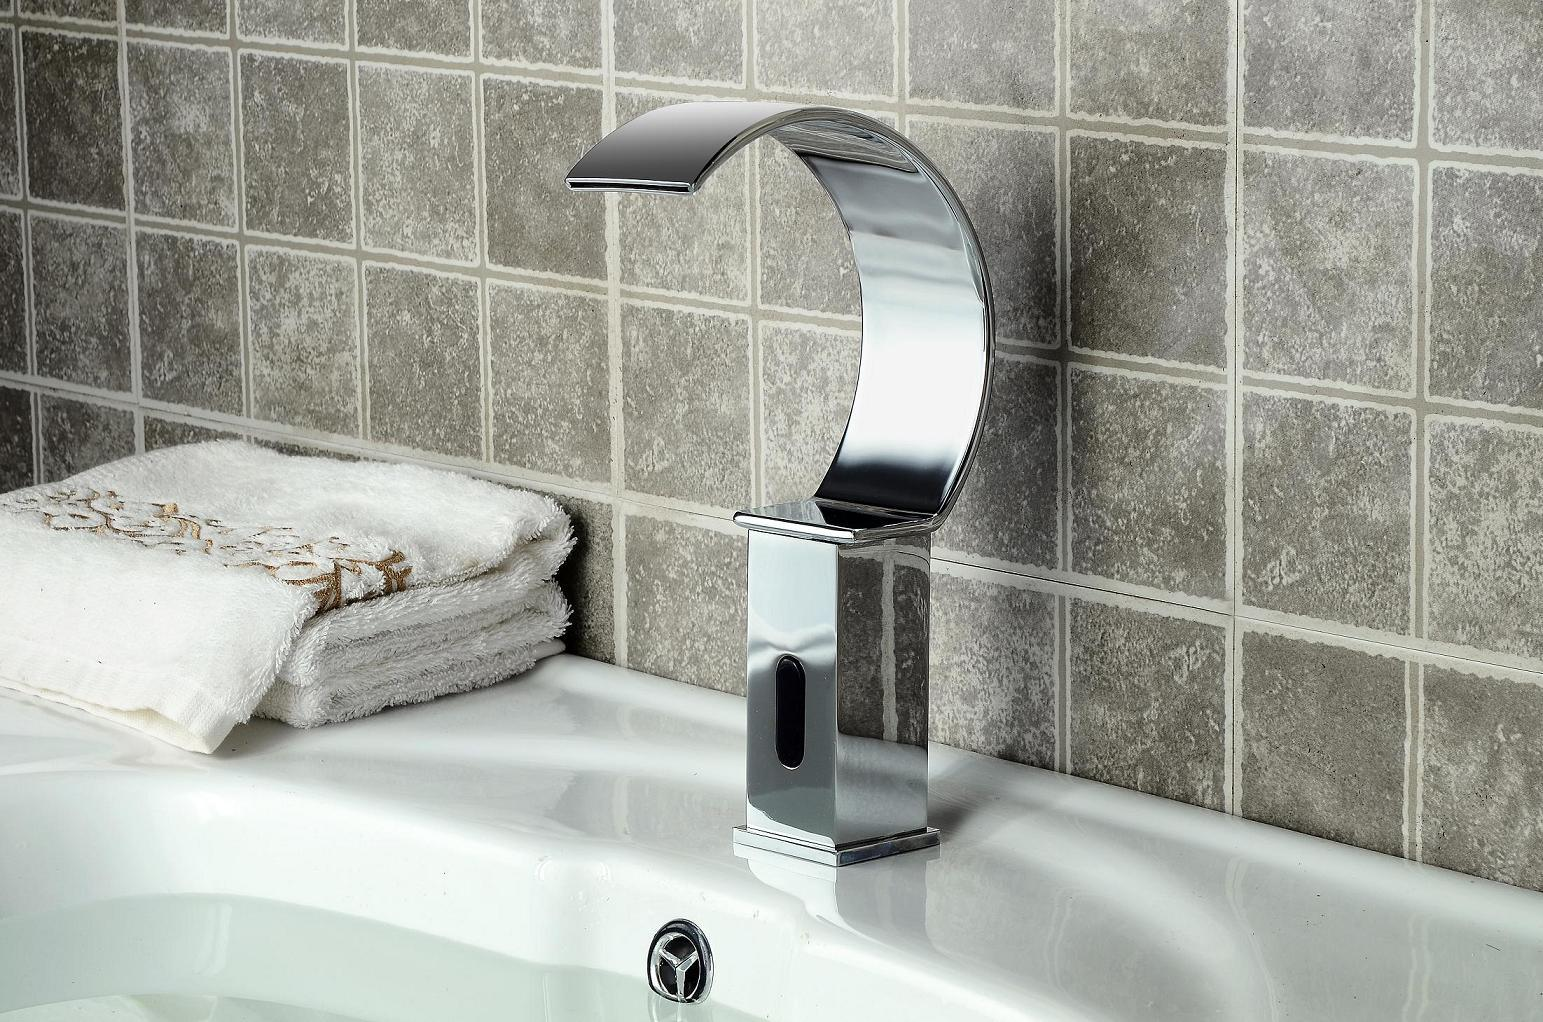 2015 New Waterfall Automatic Faucet